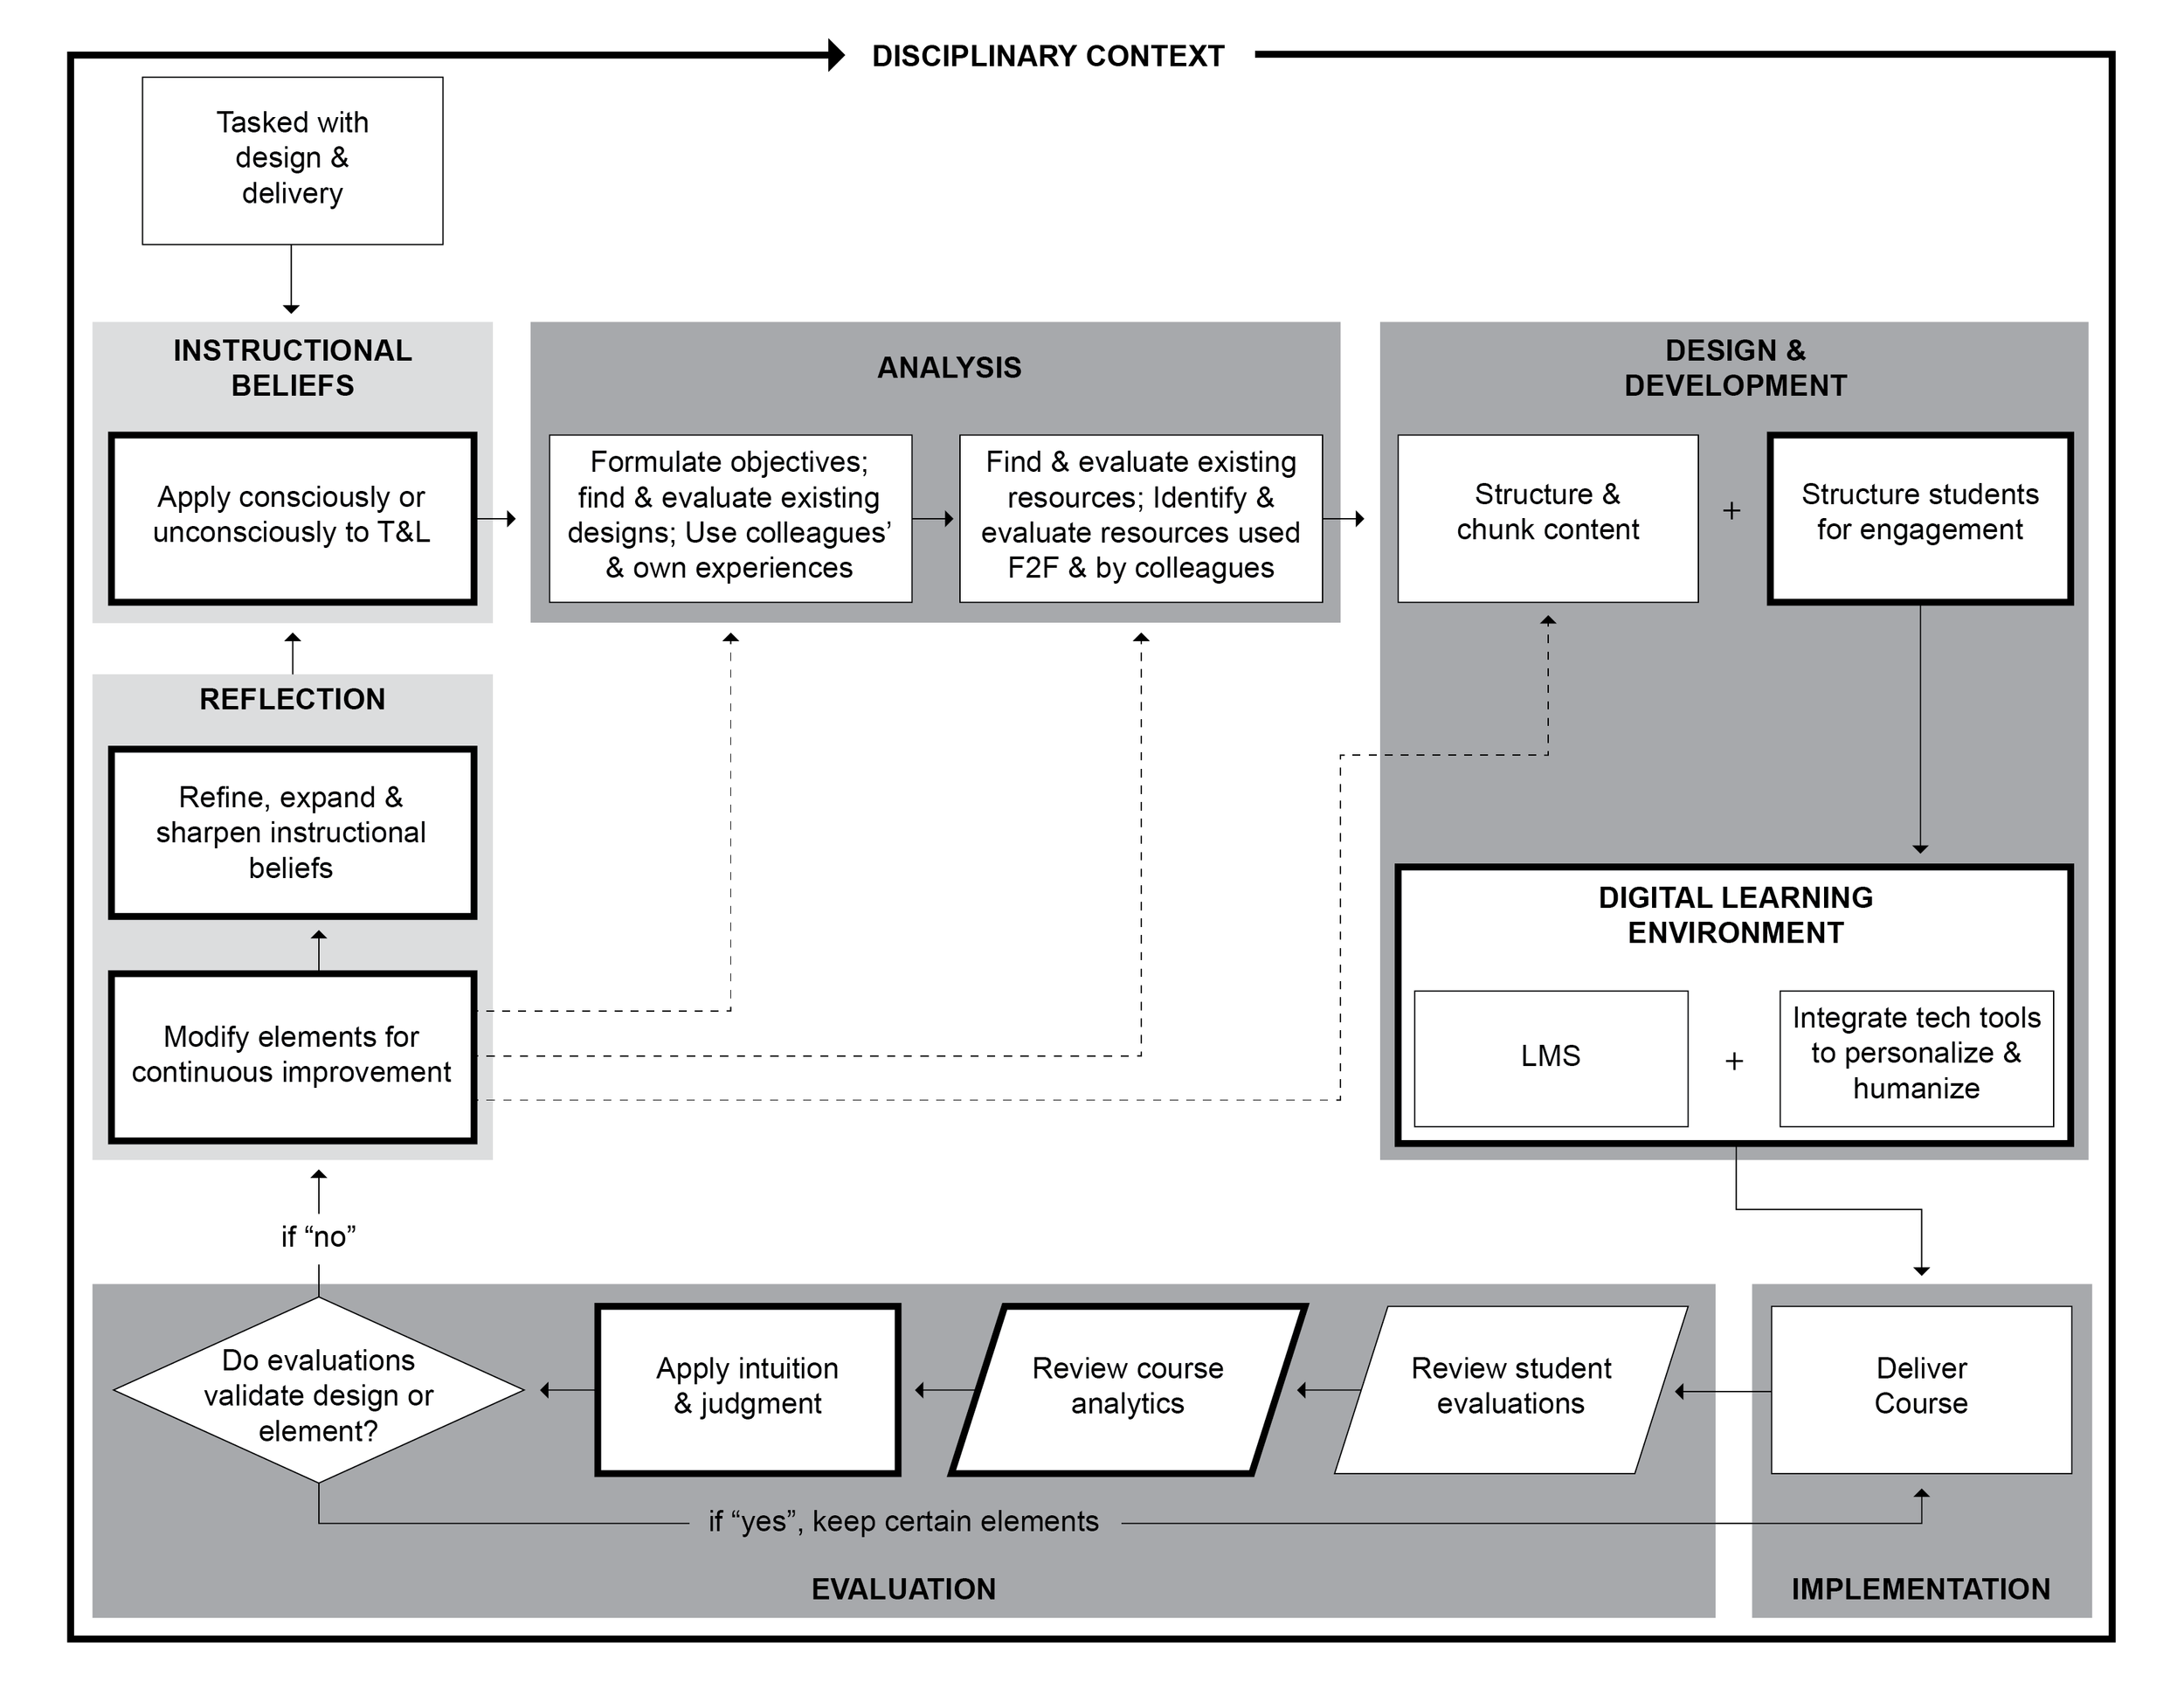 Openo's expanded view of Baldwin, Ching and Friesen's (2018) grounded theory of online course design and development.